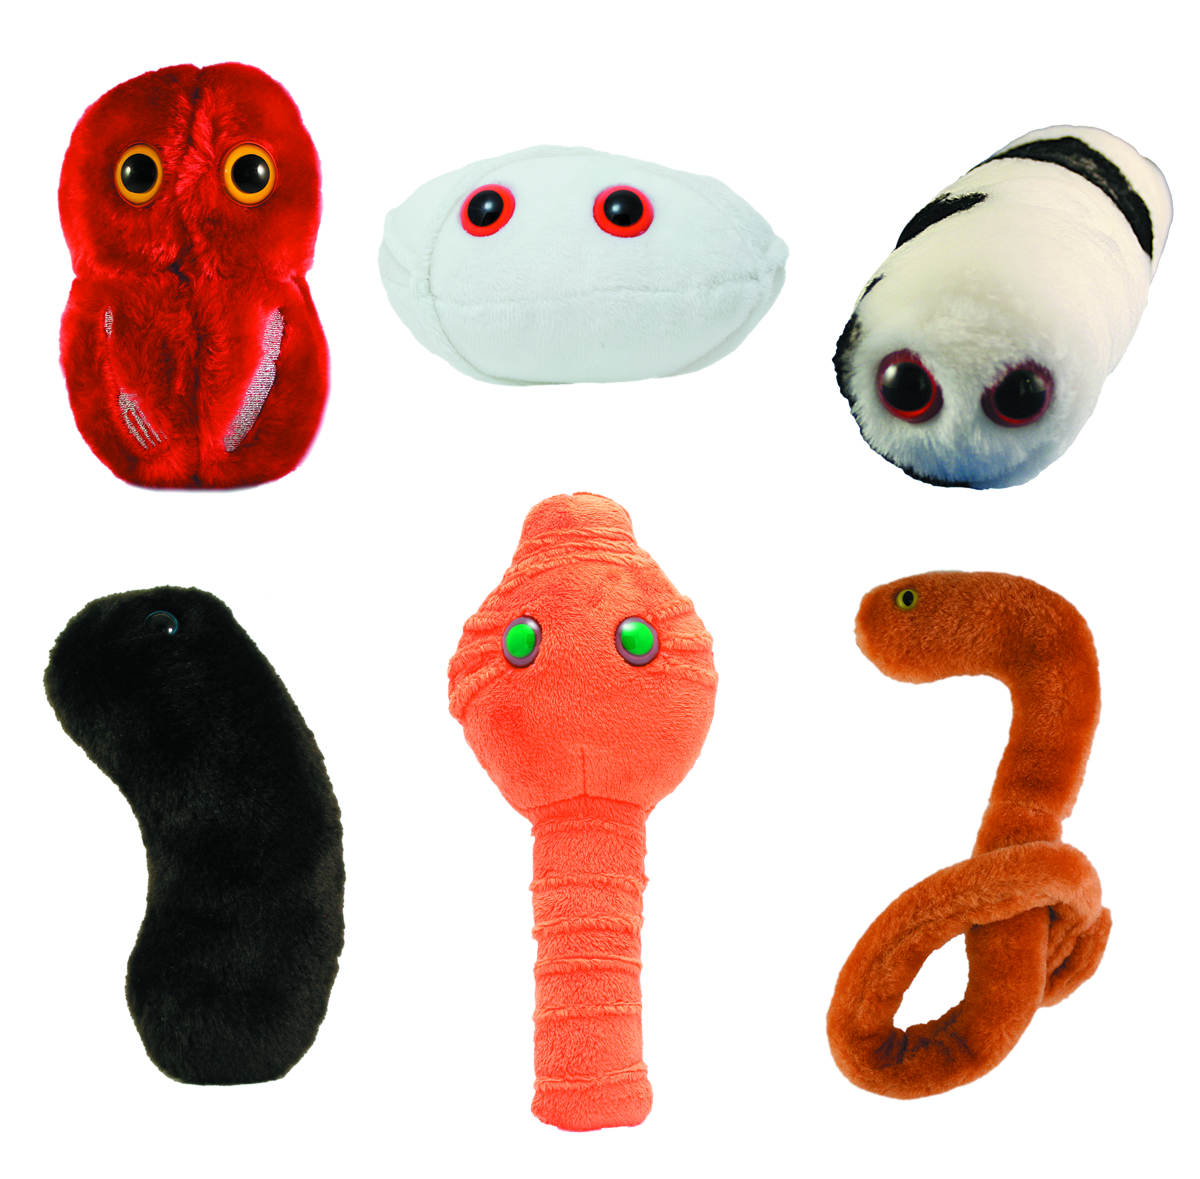 GIANT MICROBES CALAMITIES 24-PC PLUSH ASST